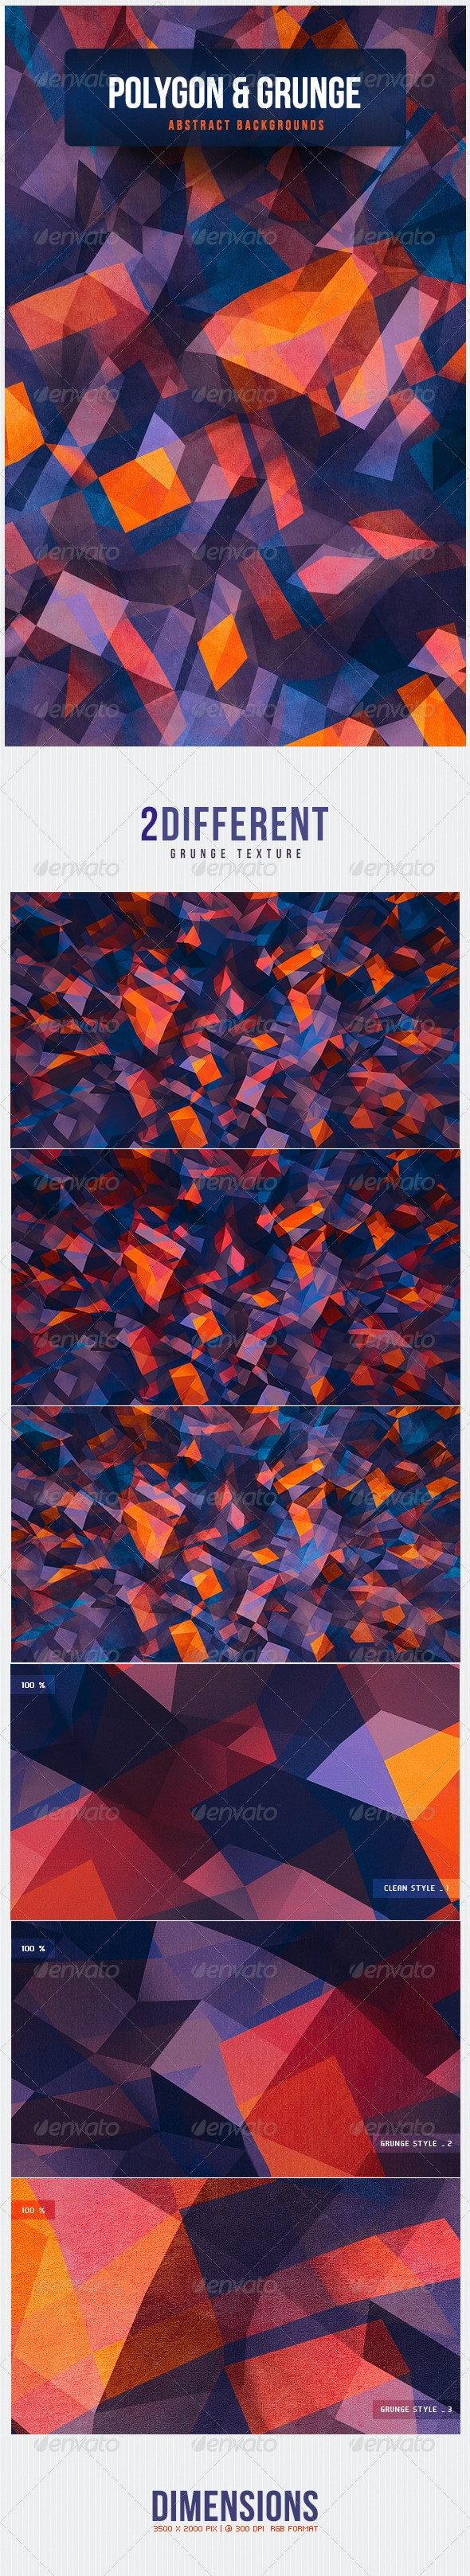 Polygon & Grunge Abstract Backgrounds - 3D Backgrounds